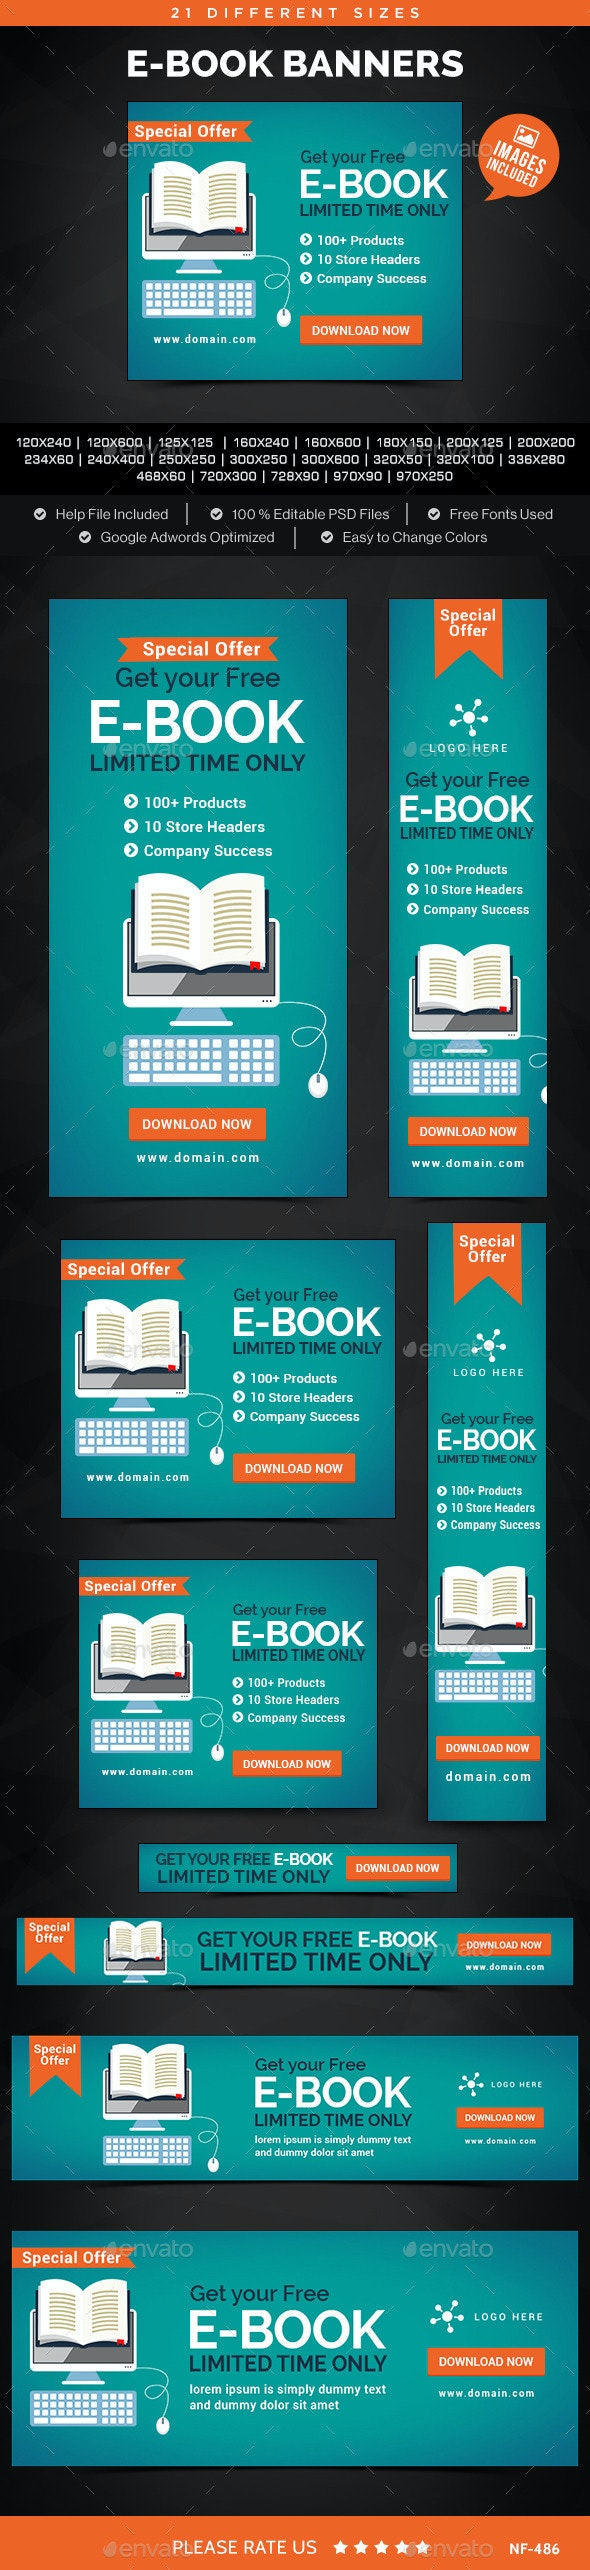 E-Book Banners - Banners & Ads Web Elements